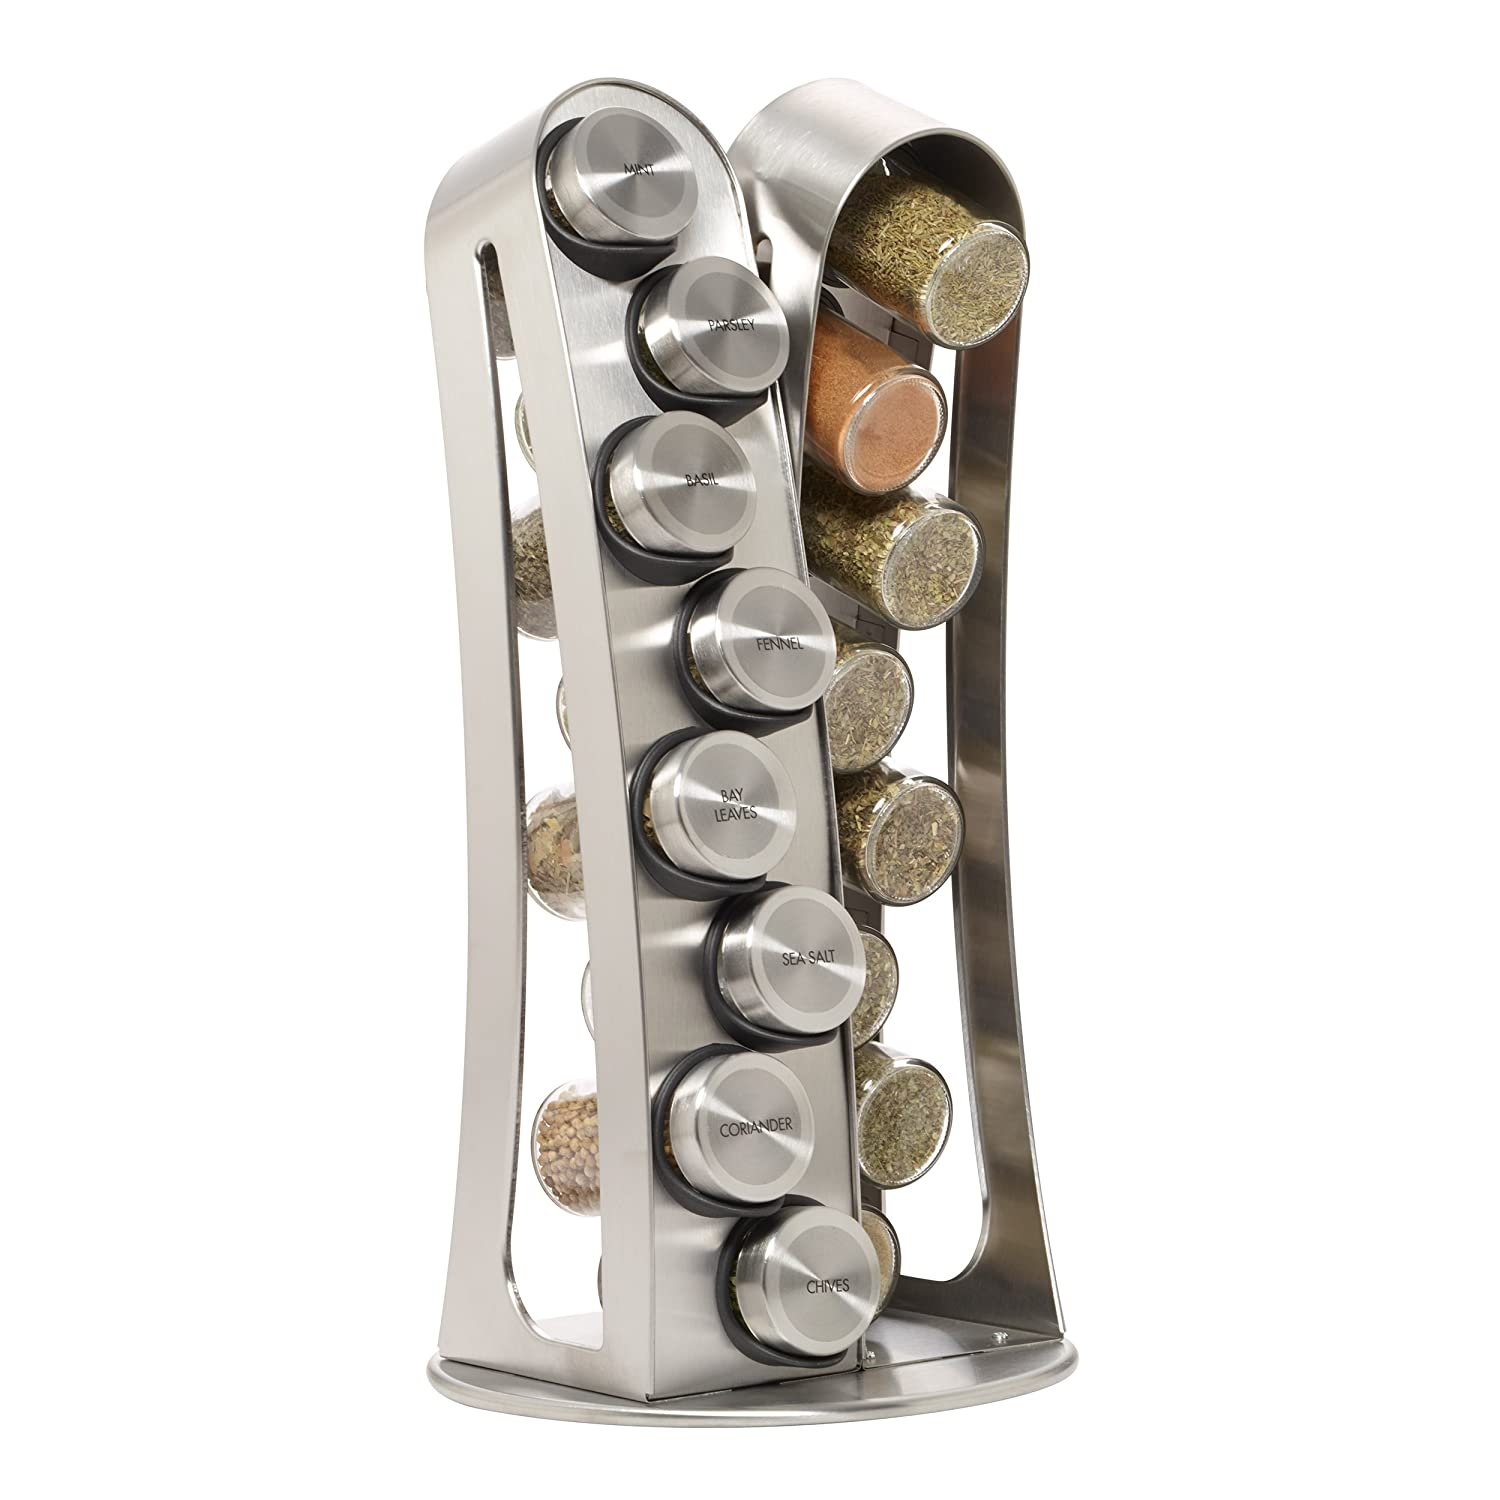 revolving stainless steel spice rack with spices included